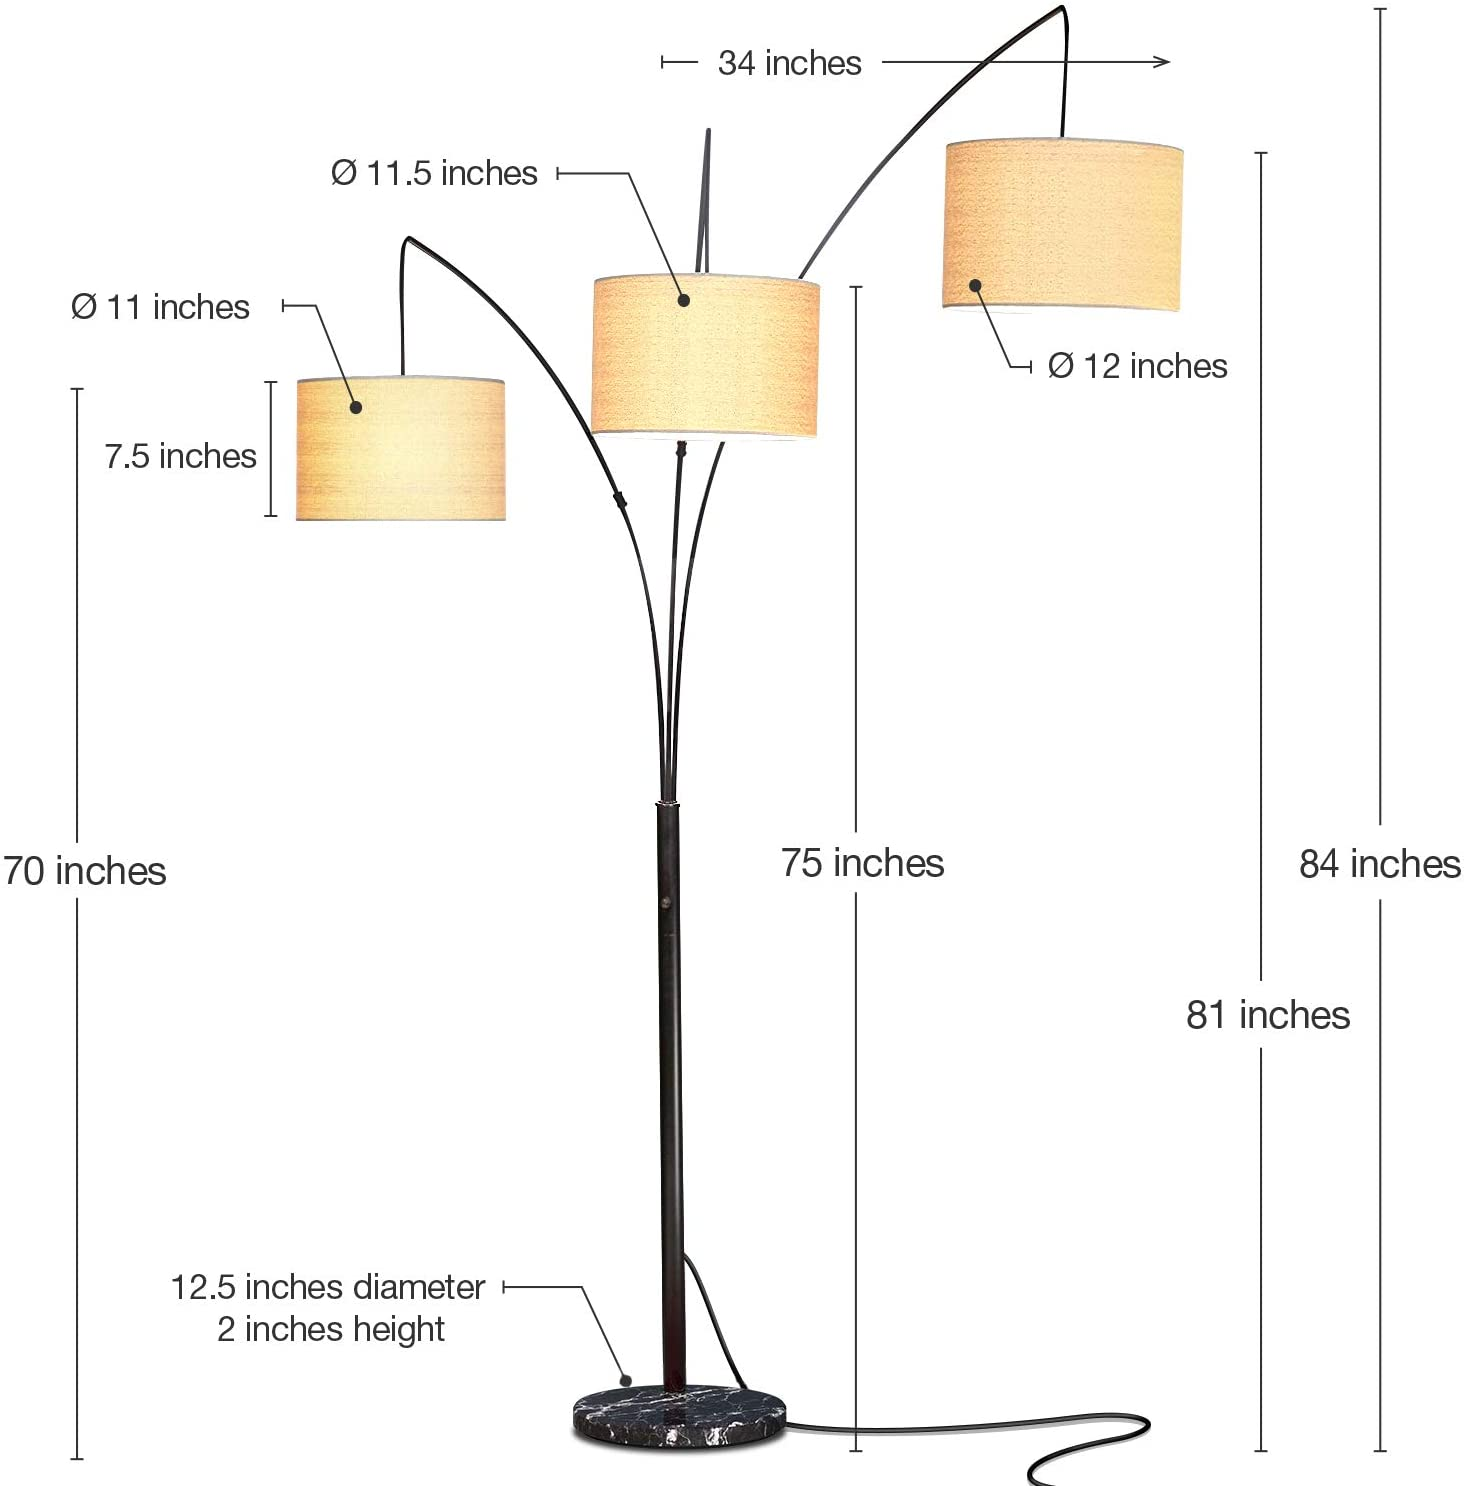 Brightech Trilage Arc Floor Lamp w Marble Base 7 Lamps Buy - Best Online Lighting Stores